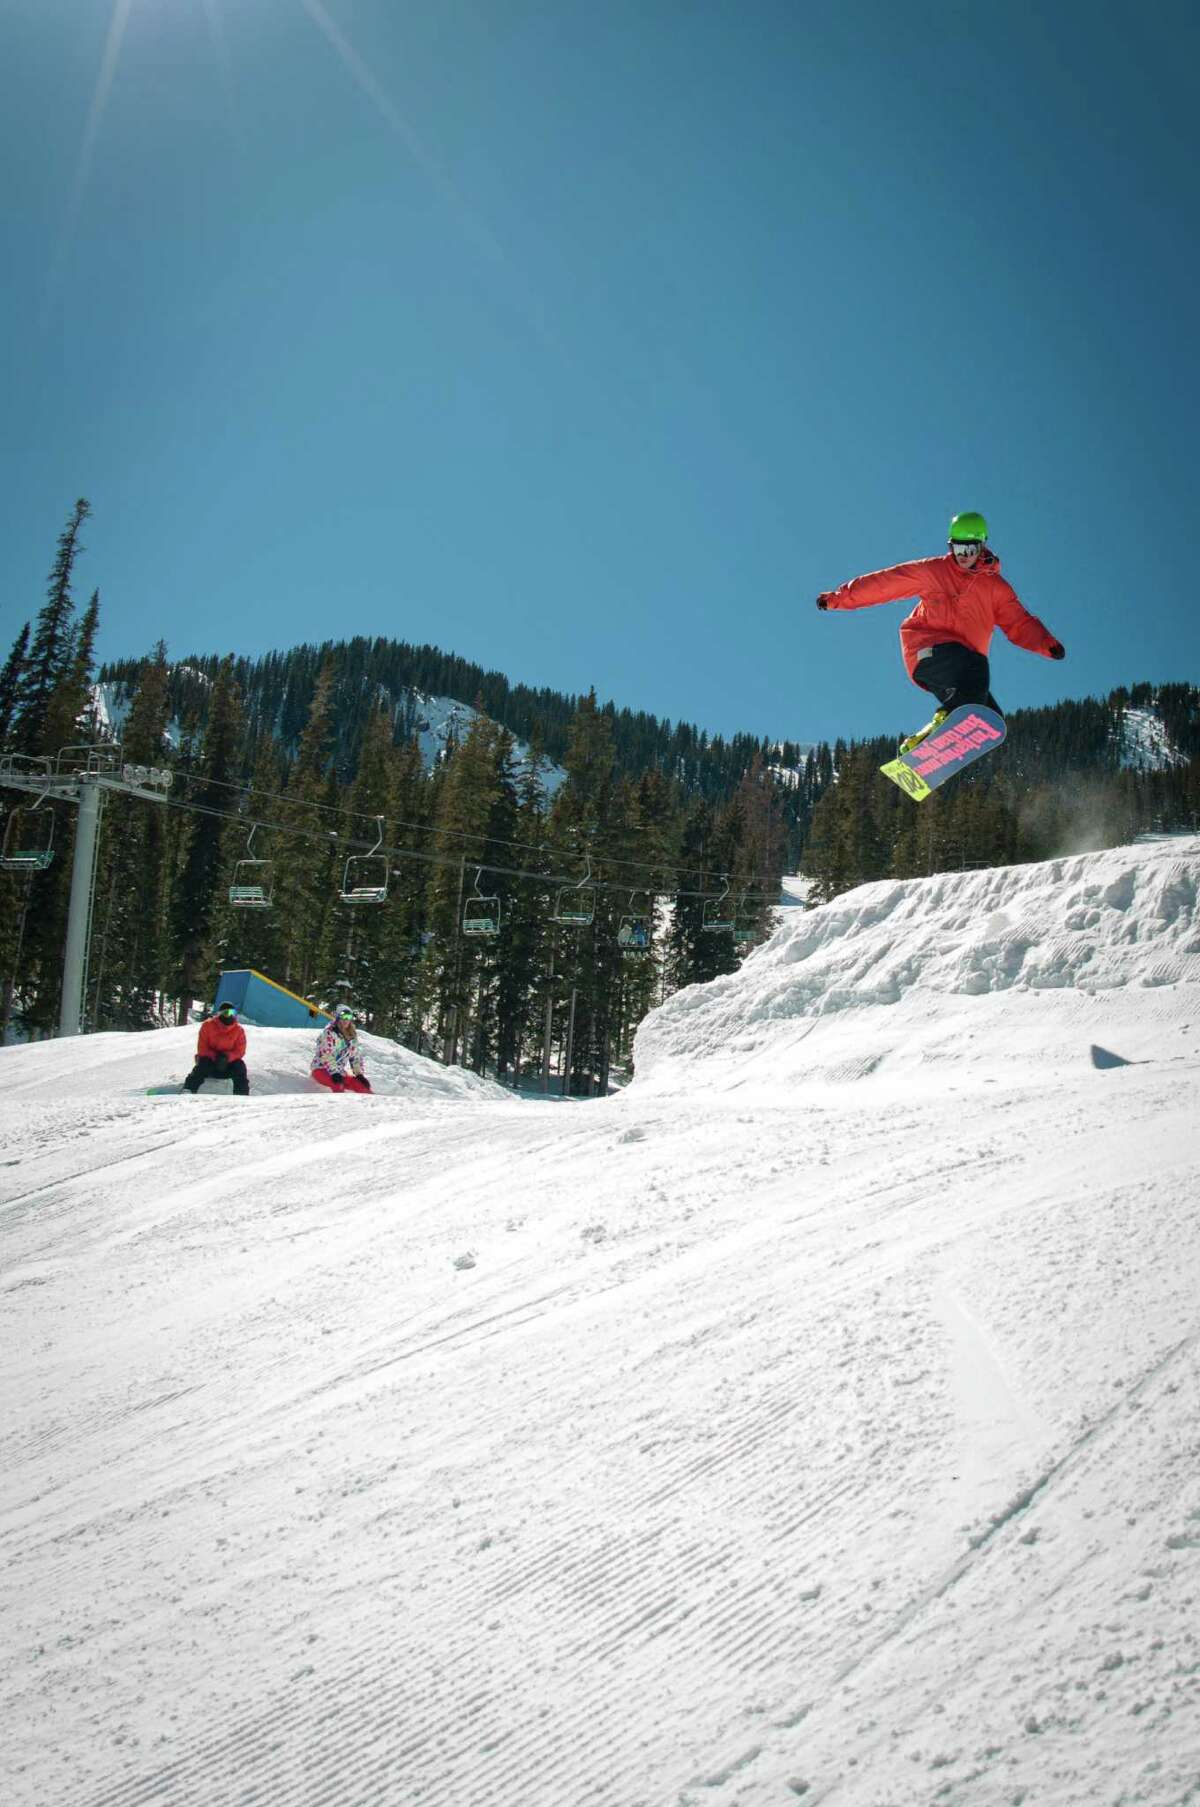 A snowboarder catches air at the resort in Taos, N.M. Taos Ski Valley is investing $300 million in the resort to update and expand its facilities. Improvements include a new lift to Kachina Peak, enhanced snowmaking, and modernized hotel, dining and shopping options. (Thatcher Dorn/Taos Ski Valley via AP)